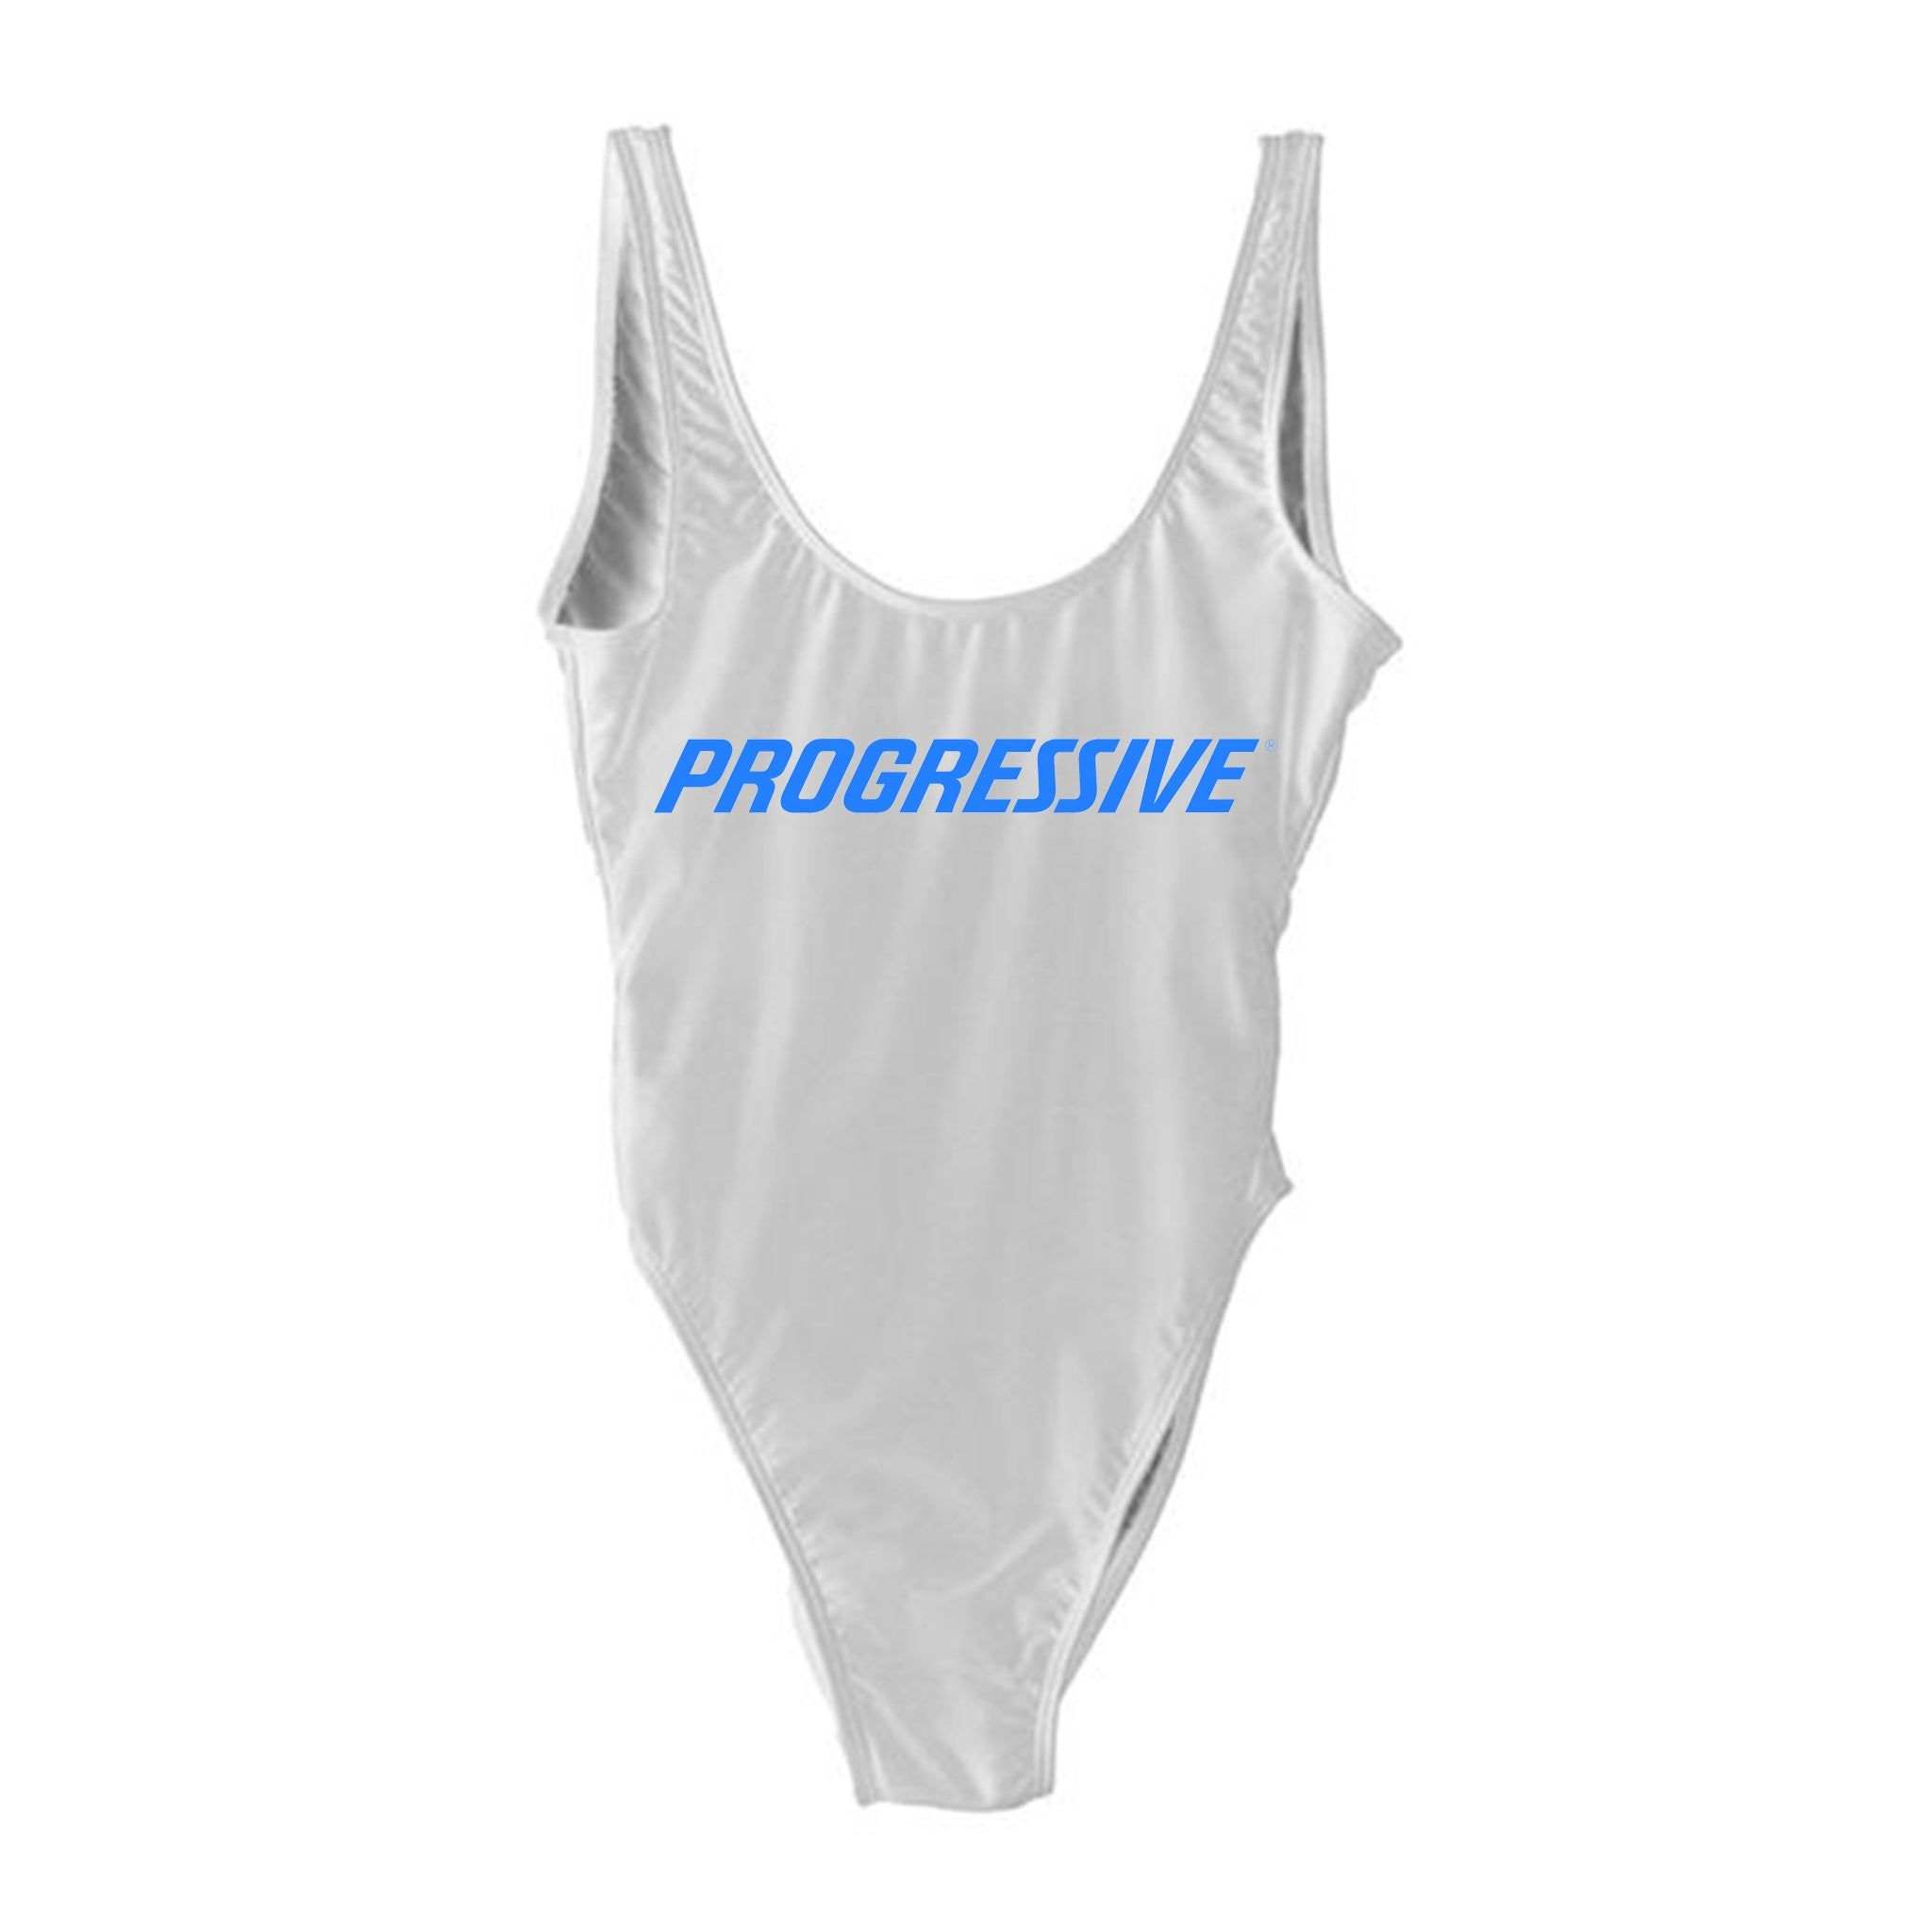 PROGRESSIVE [SWIMSUIT]